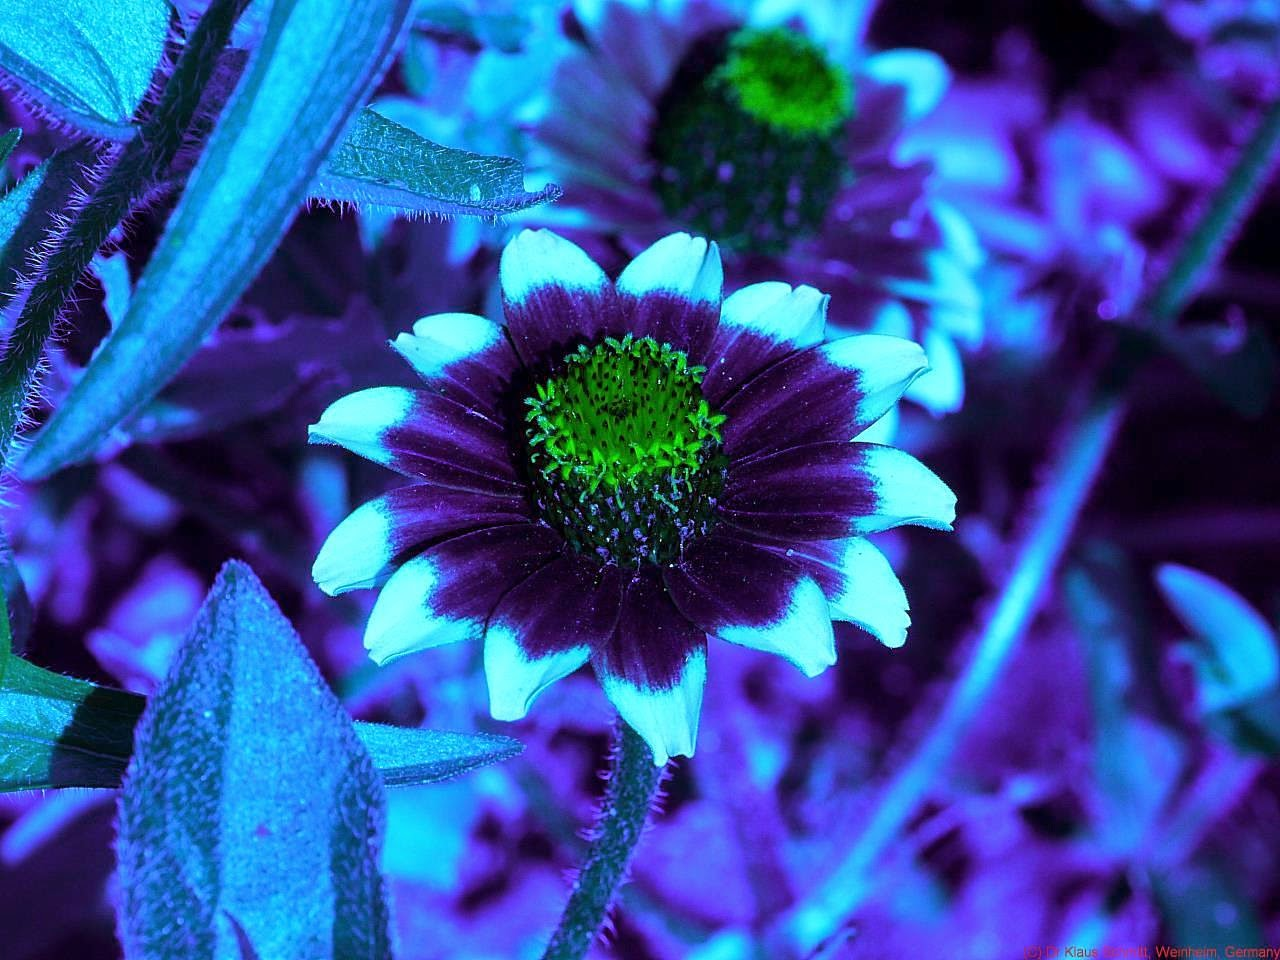 Flower in ultraviolet light uv vision